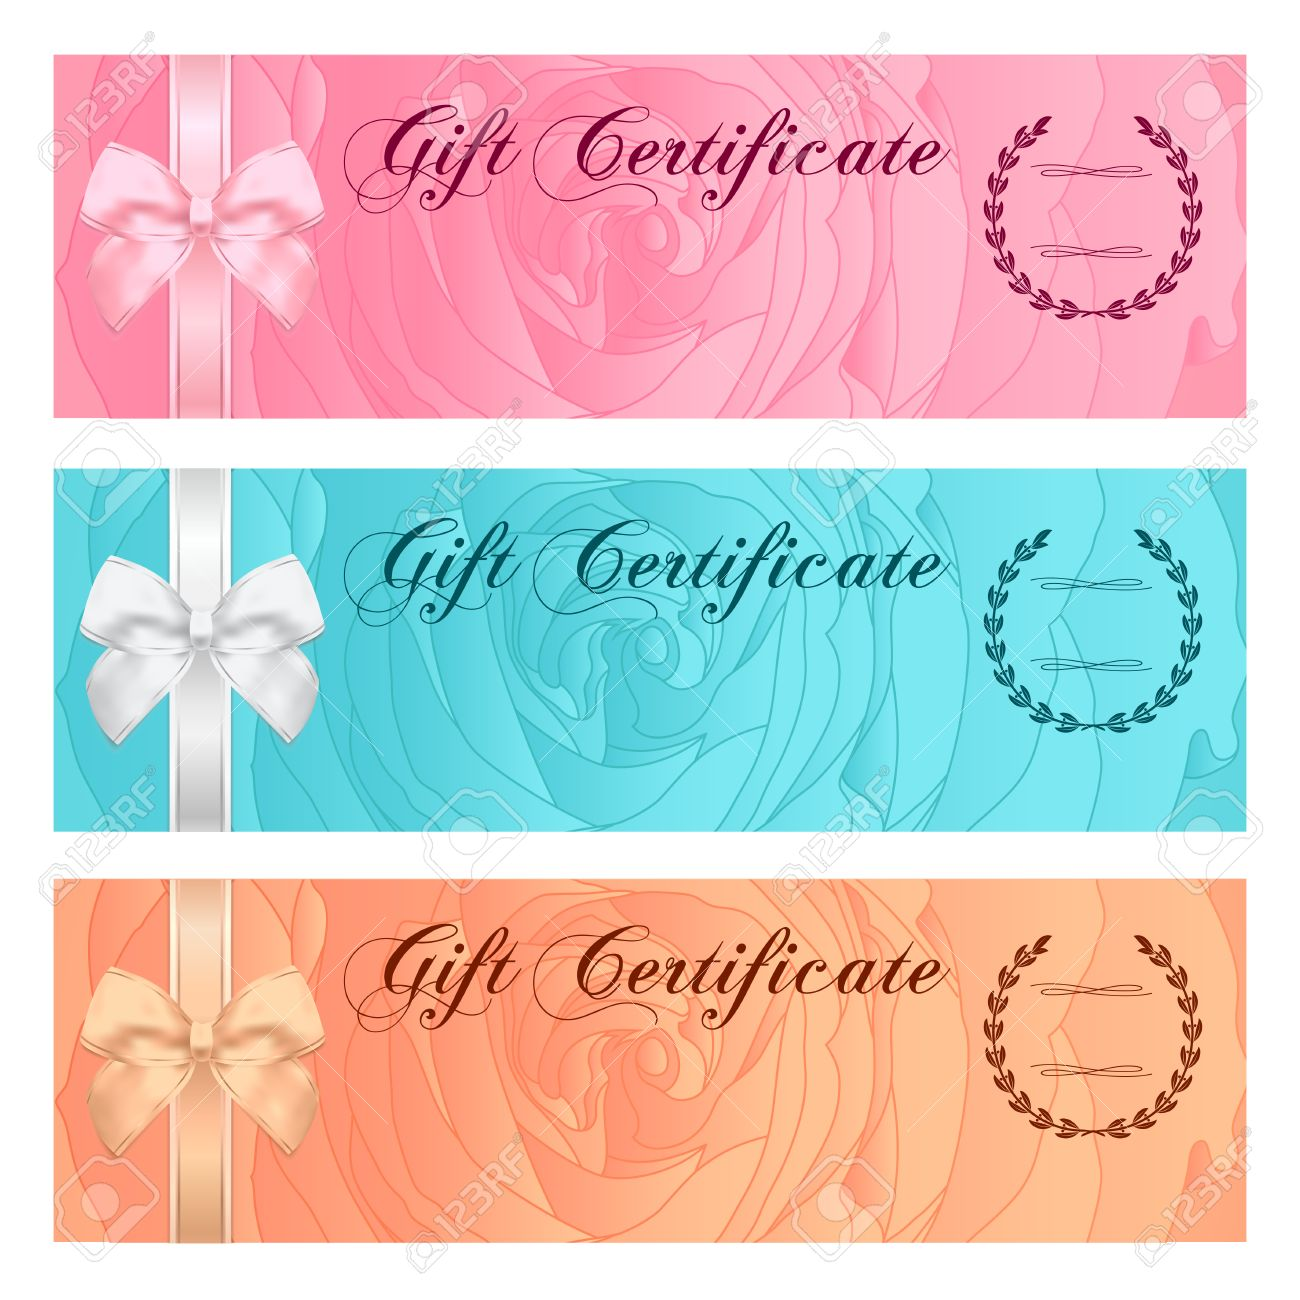 Gift certificate voucher coupon reward gift card template gift certificate voucher coupon reward gift card template with bow floral rose xflitez Images